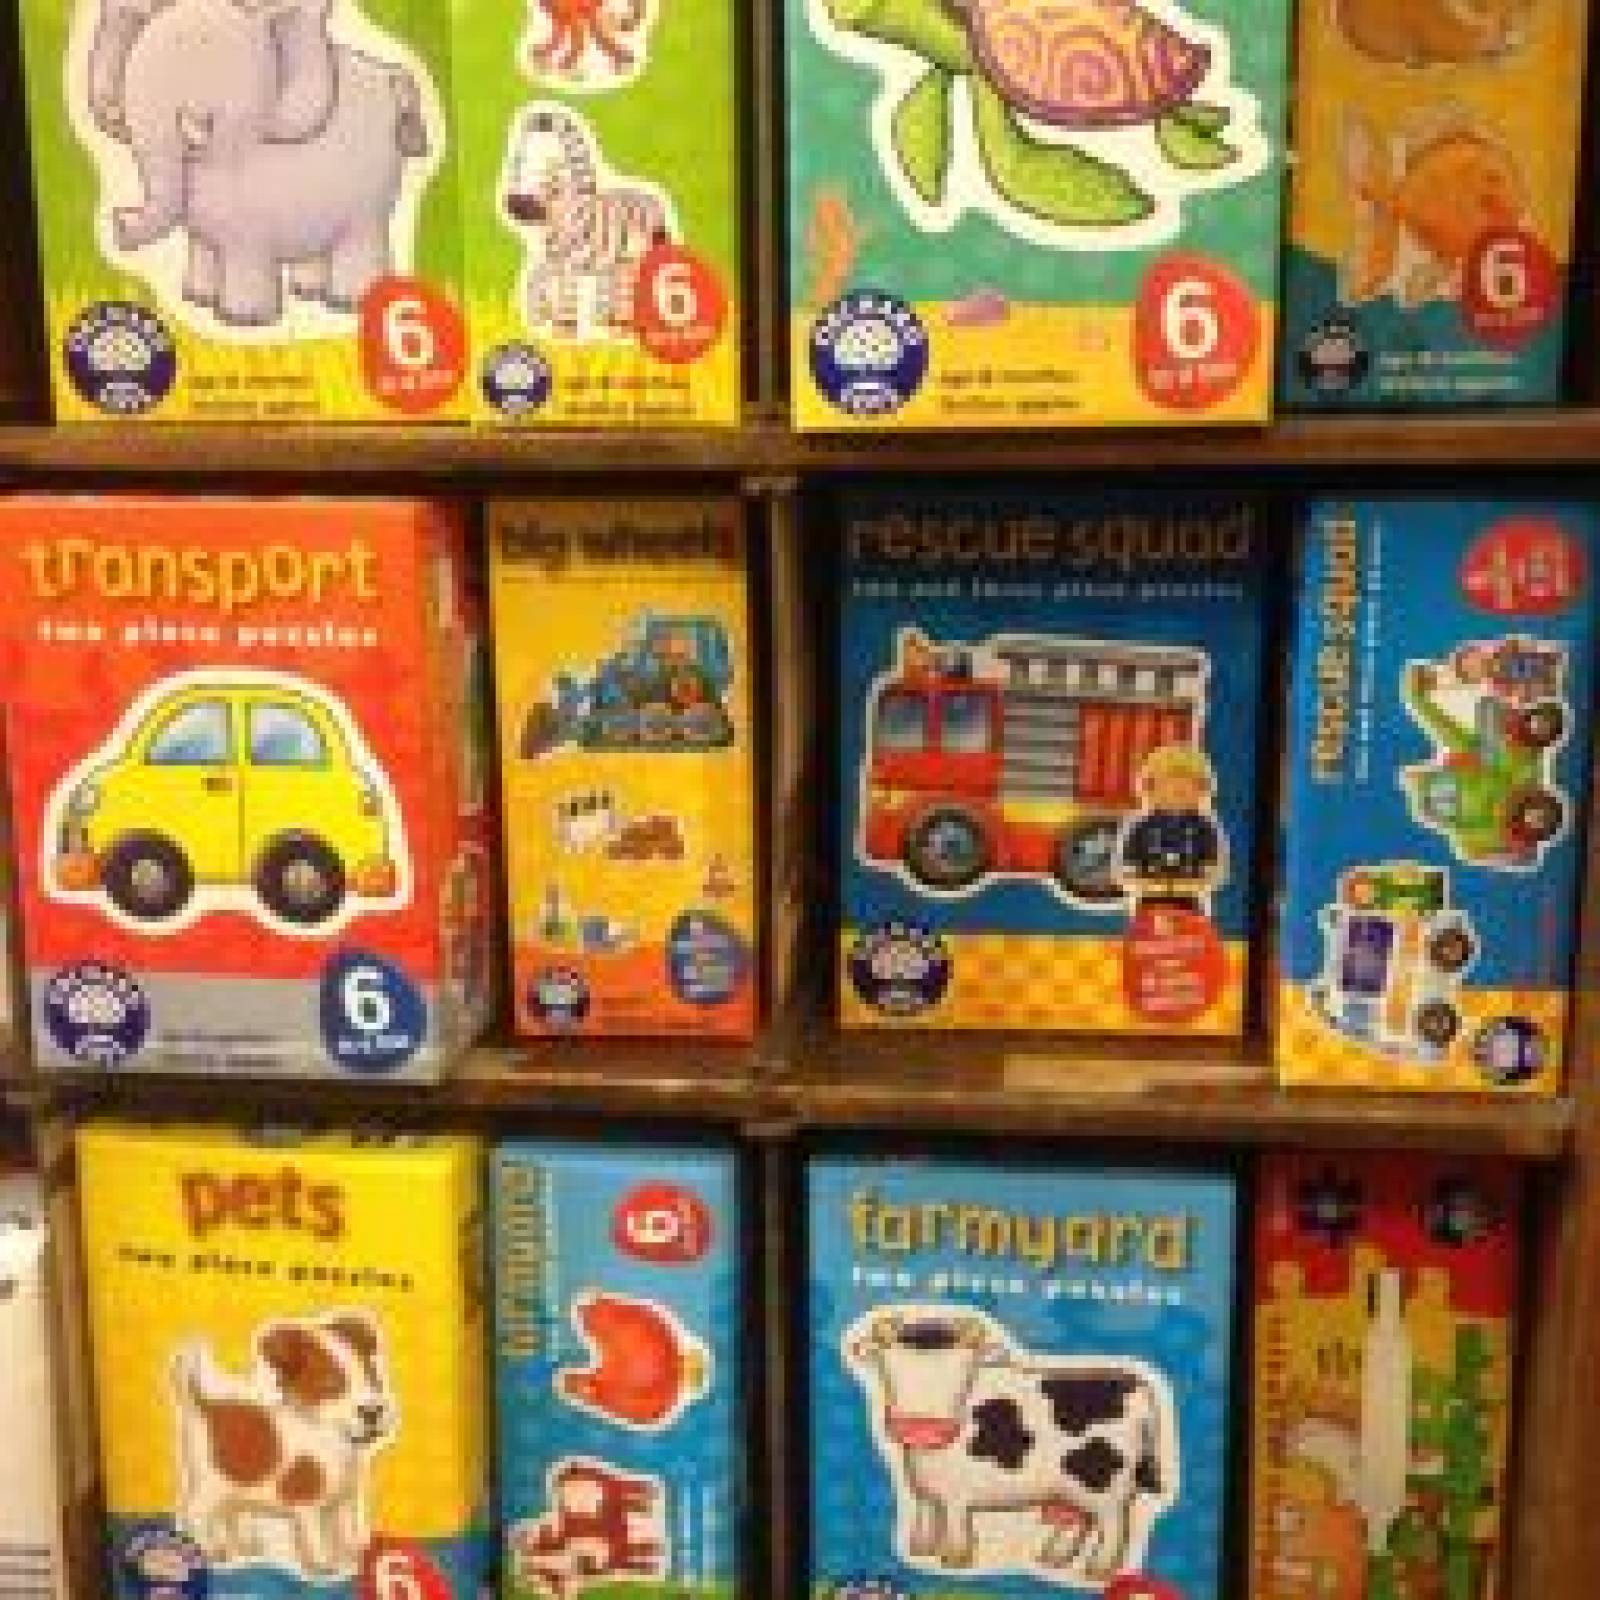 Rescue Squad 6 In A Box Puzzles By Orchard - 18mth+ thumbnails